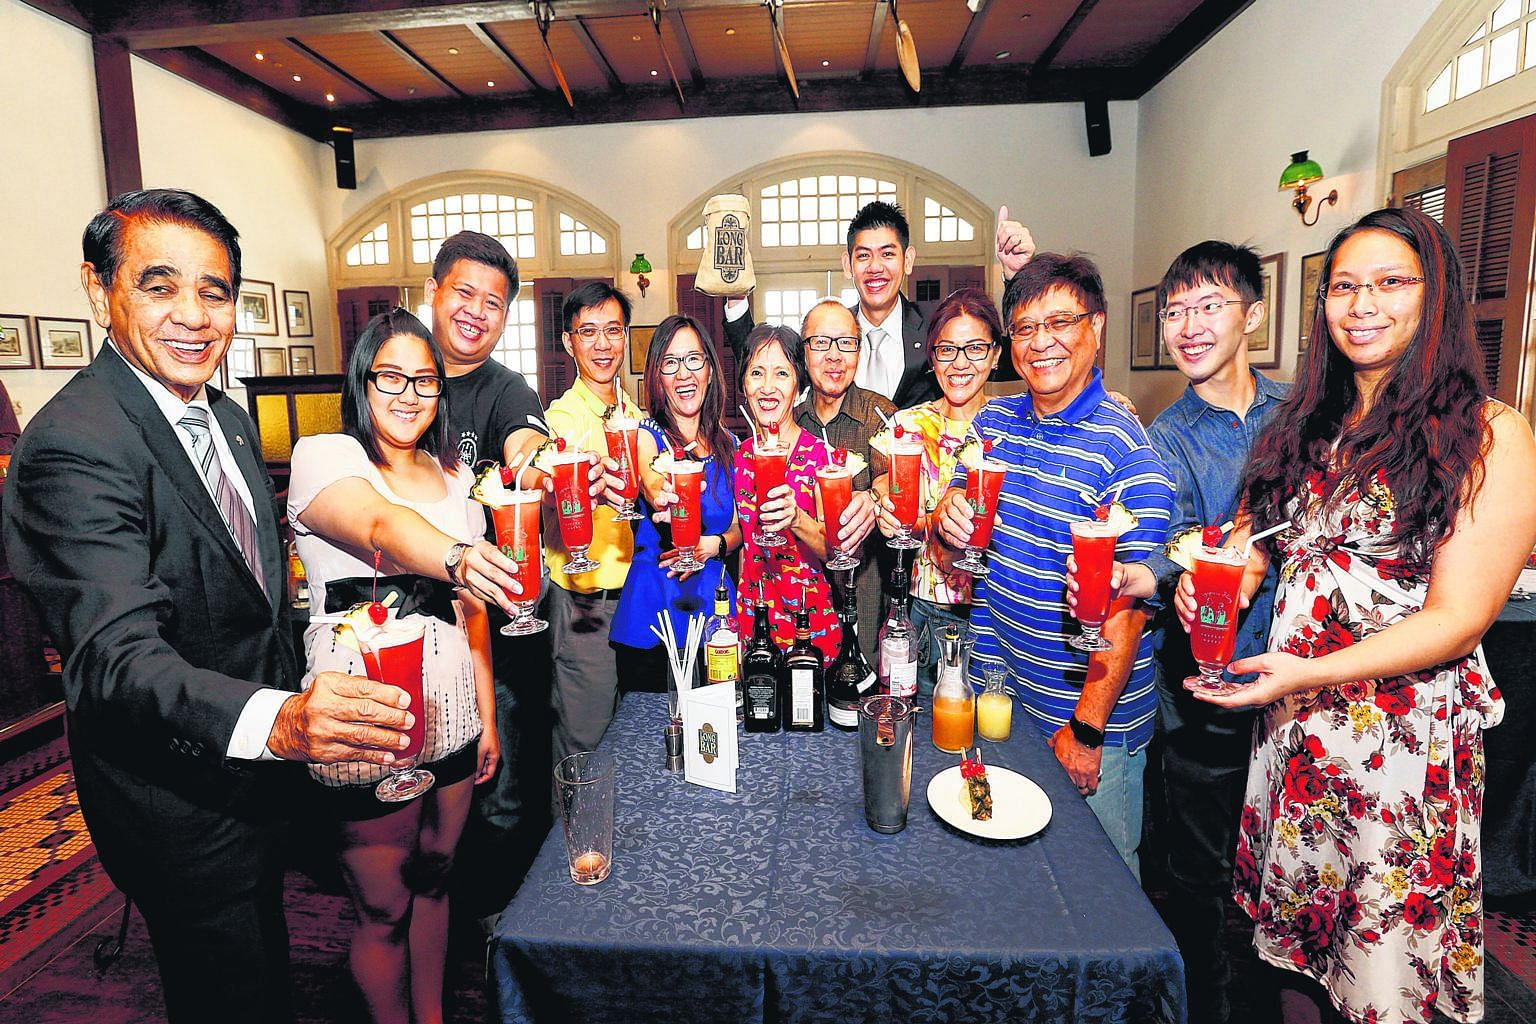 Raising a toast with their Singapore Slings in the Raffles Hotel Long Bar are (from left) Raffles Hotel resident historian Leslie Danker, 76; Ms Eunicia Tan, 22; Mr Gibson Chua, 25; Mr Gary Tan, 51; Ms Elin Loo, 49; Ms Irene Tan, 58; Mr Patrick Tan,